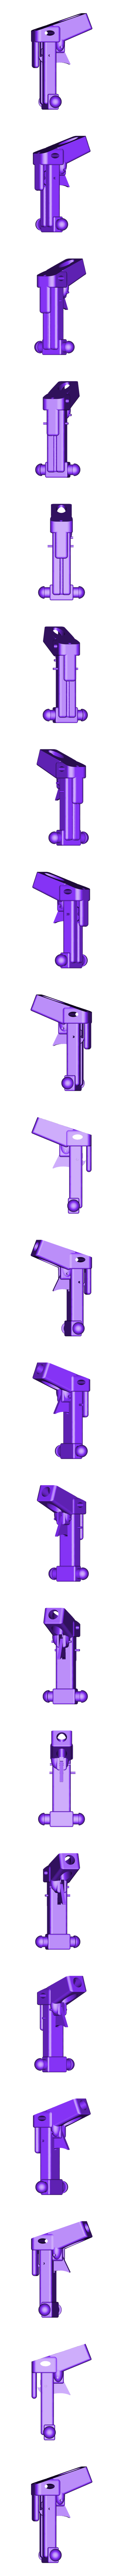 MINI_CROSSBOW_COMBINED.stl Download free STL file Match Stick SHOOTER • 3D print object, MuSSy